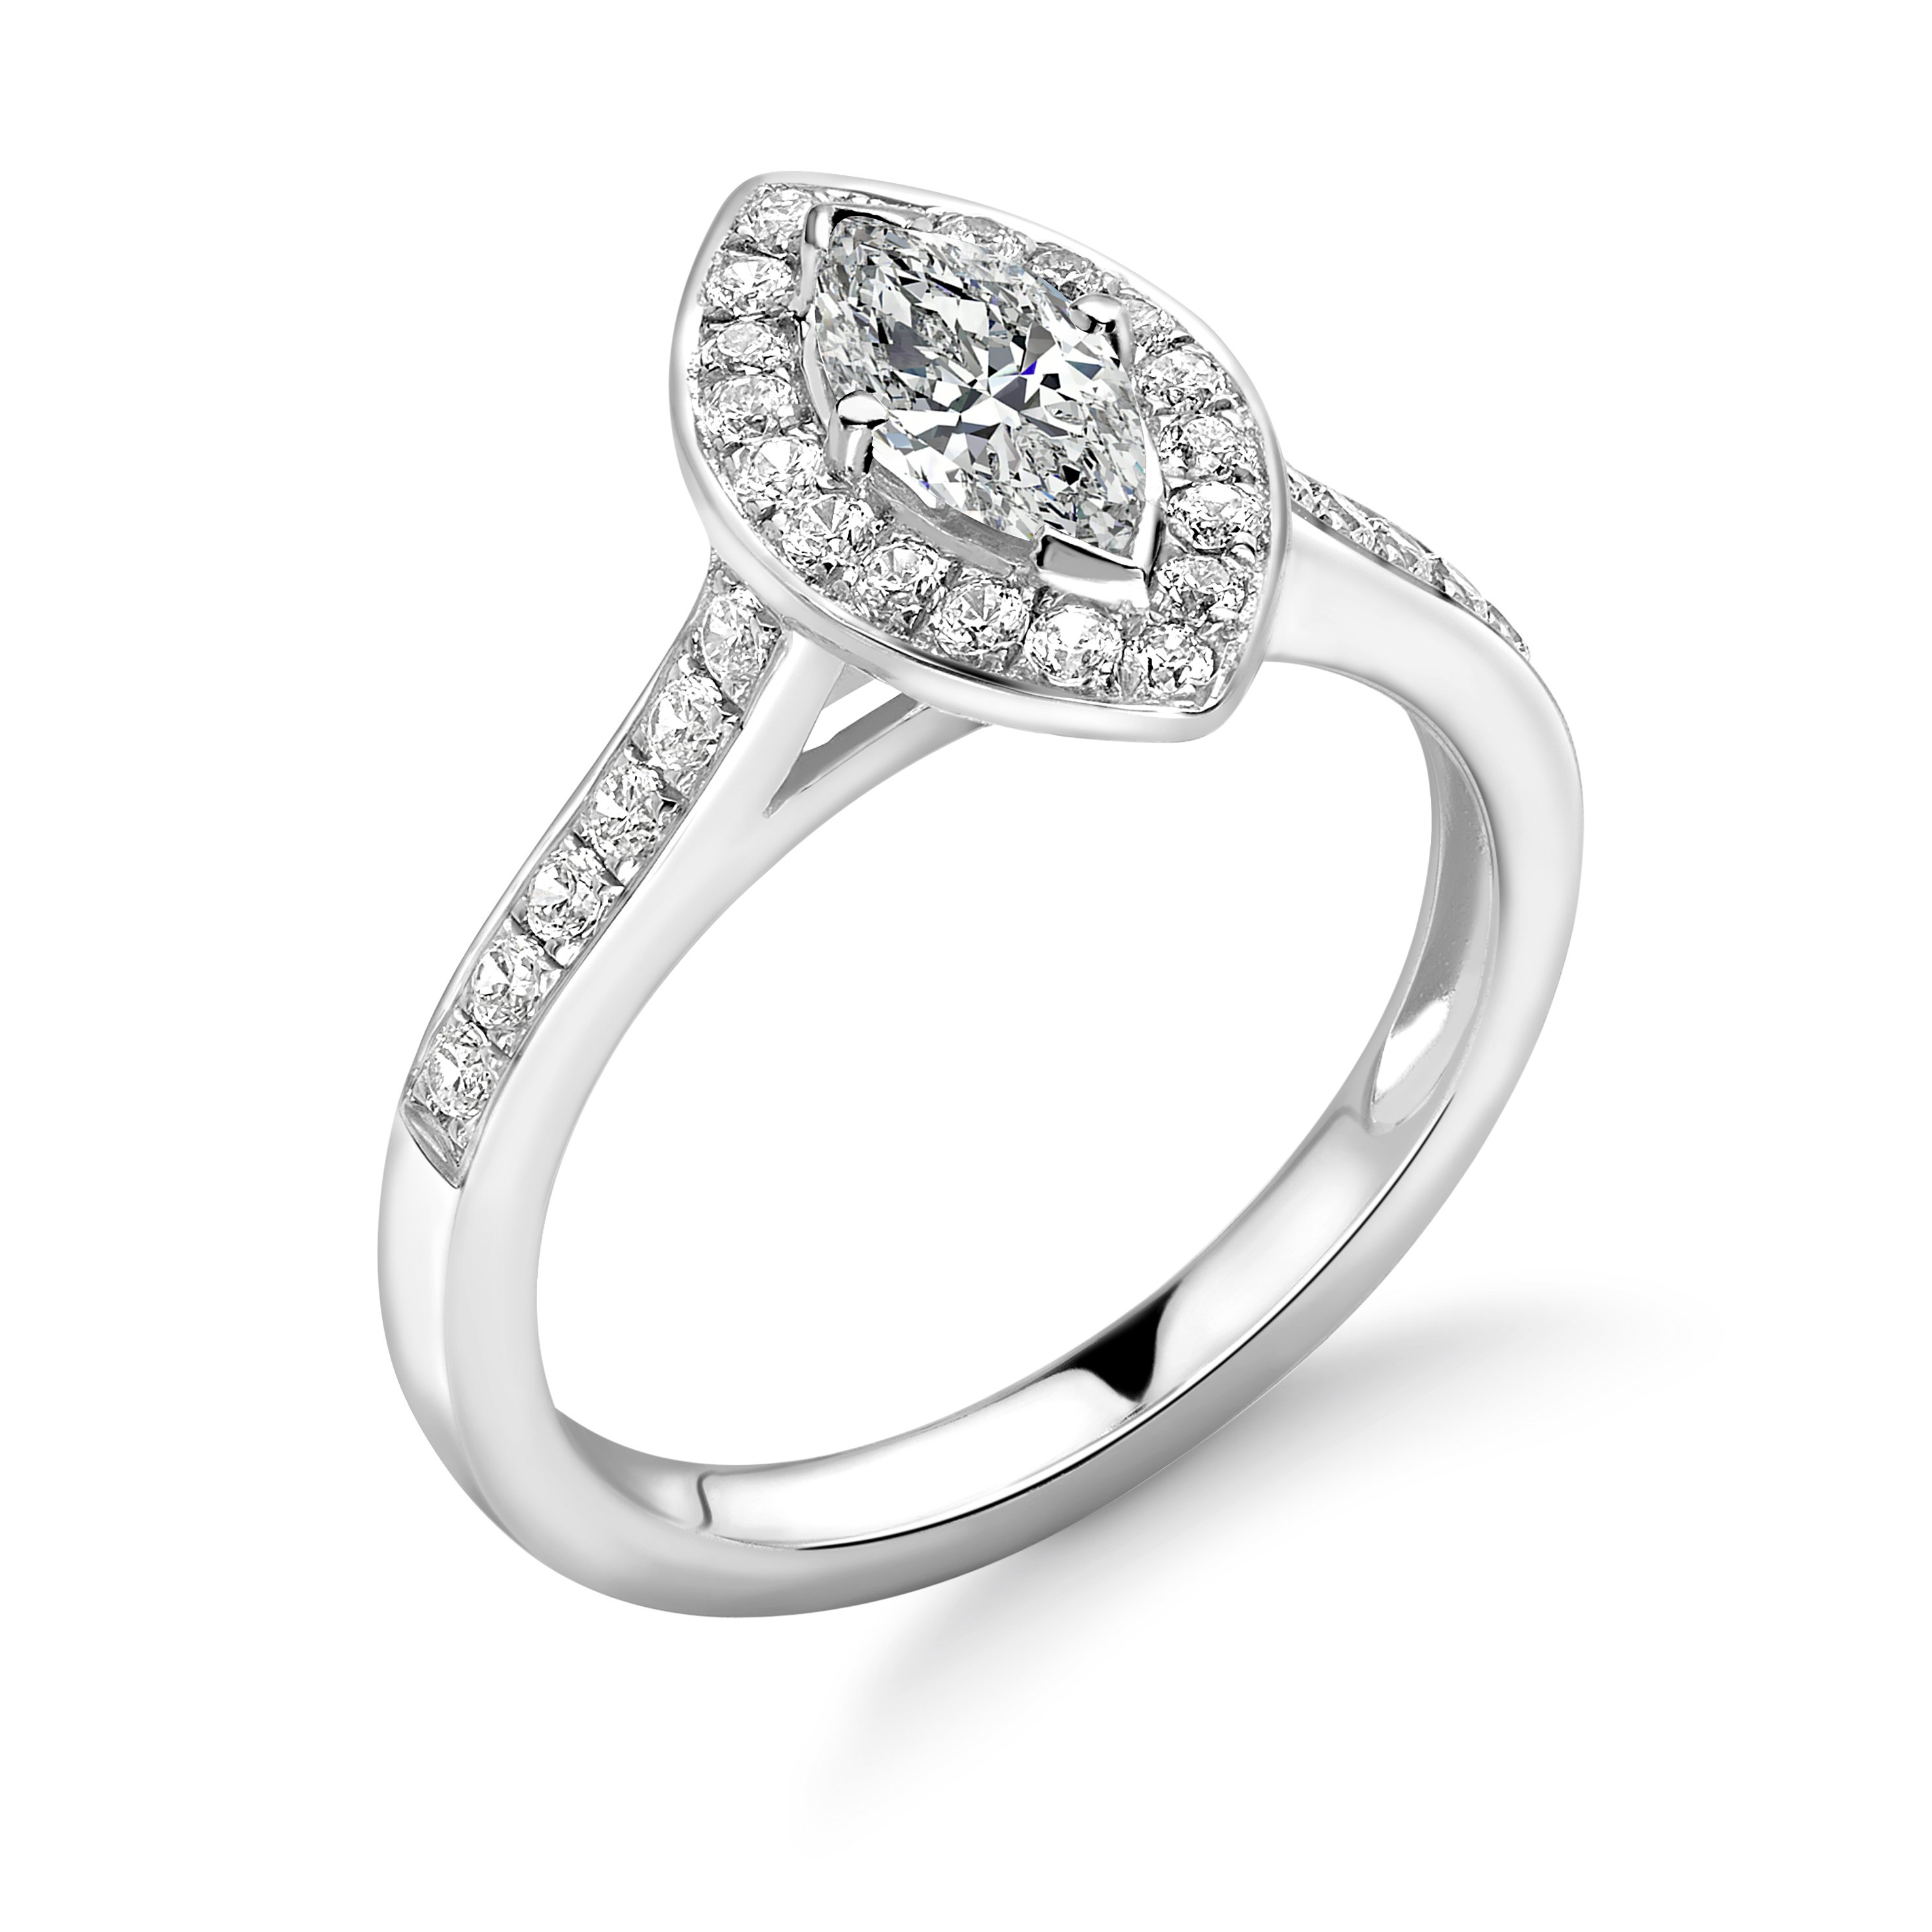 4 Prong Setting Marquise Shape Pave Halo Diamond Engagement Rings